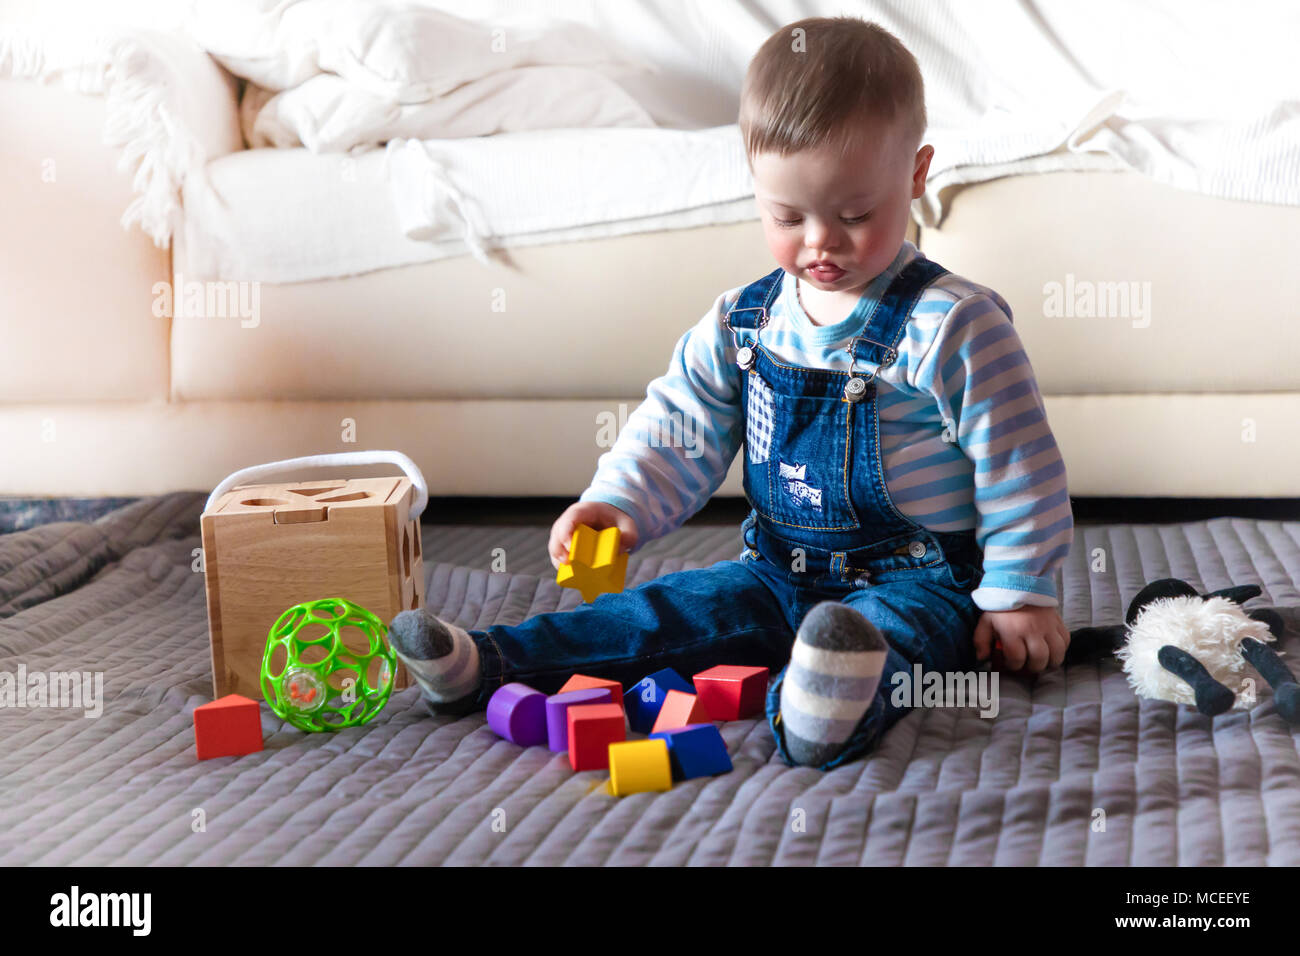 Portrait of cute baby boy with Down syndrome - Stock Image